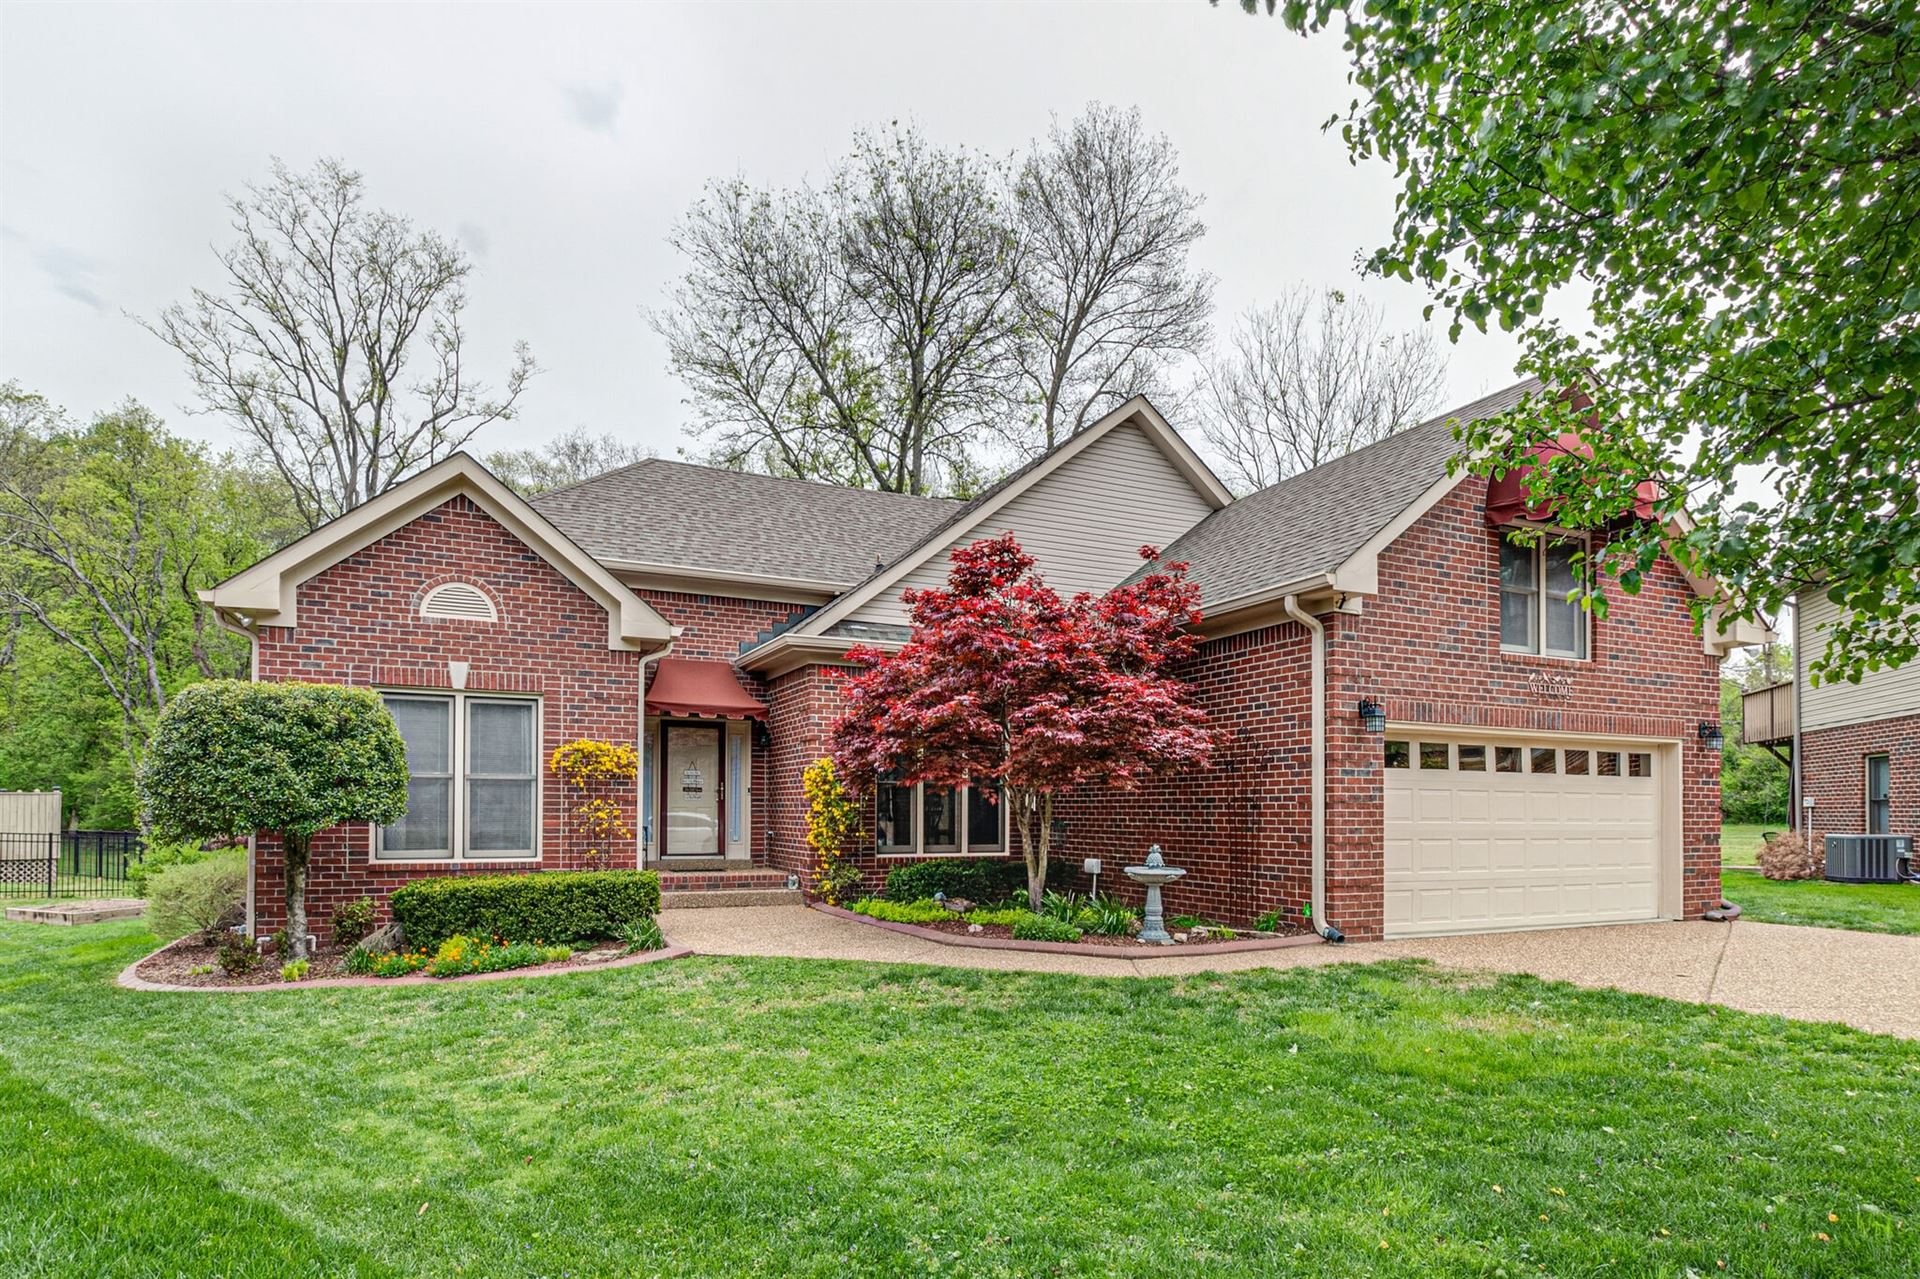 805 Withers Pl, Hermitage, TN 37076 - MLS#: 2244475